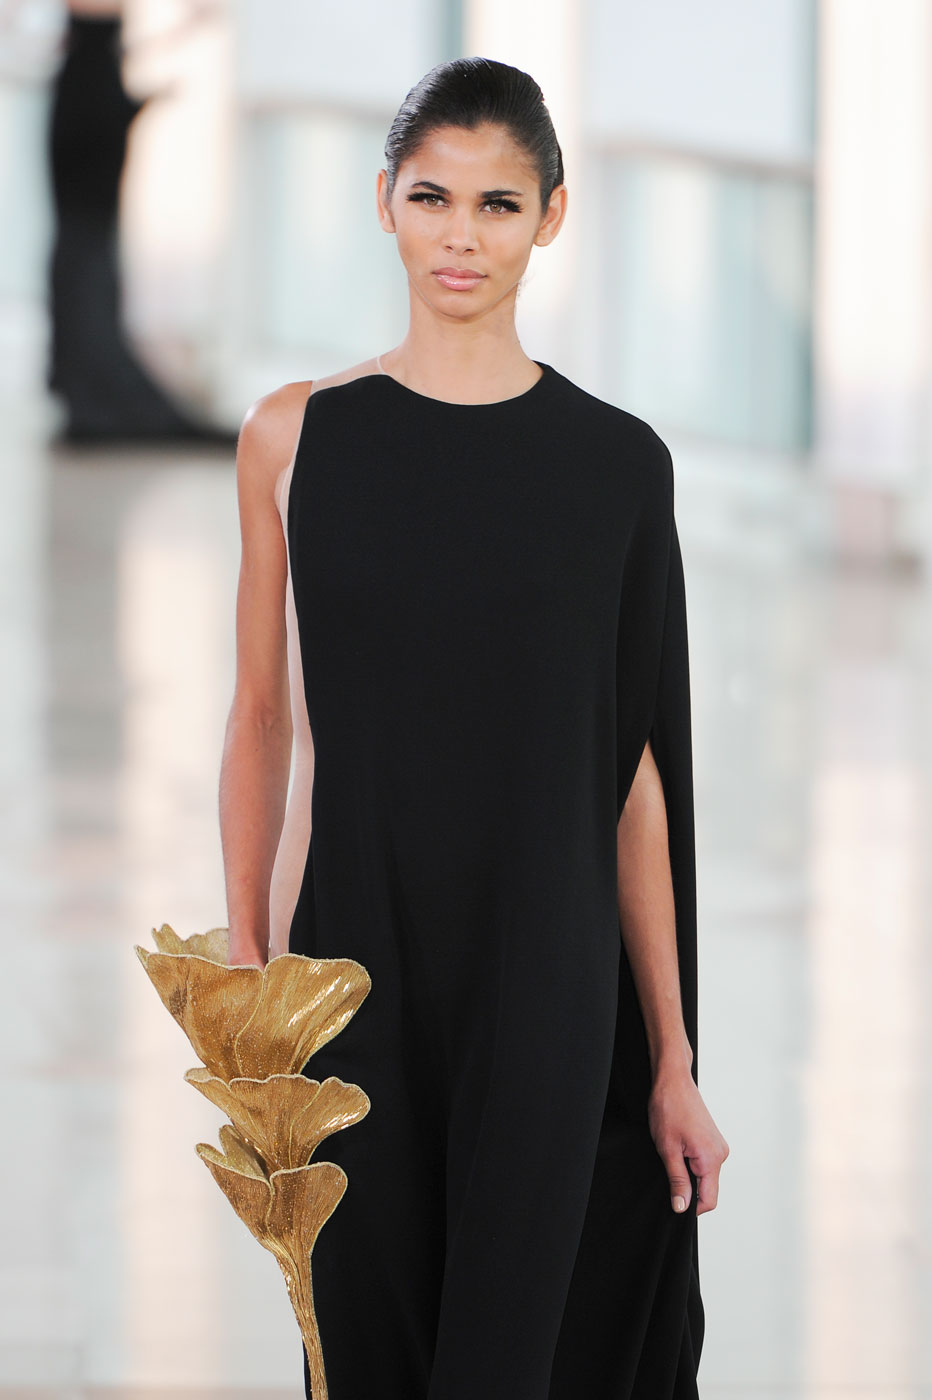 stephane-rolland-fashion-runway-show-haute-couture-paris-spring-2015-the-impression-37